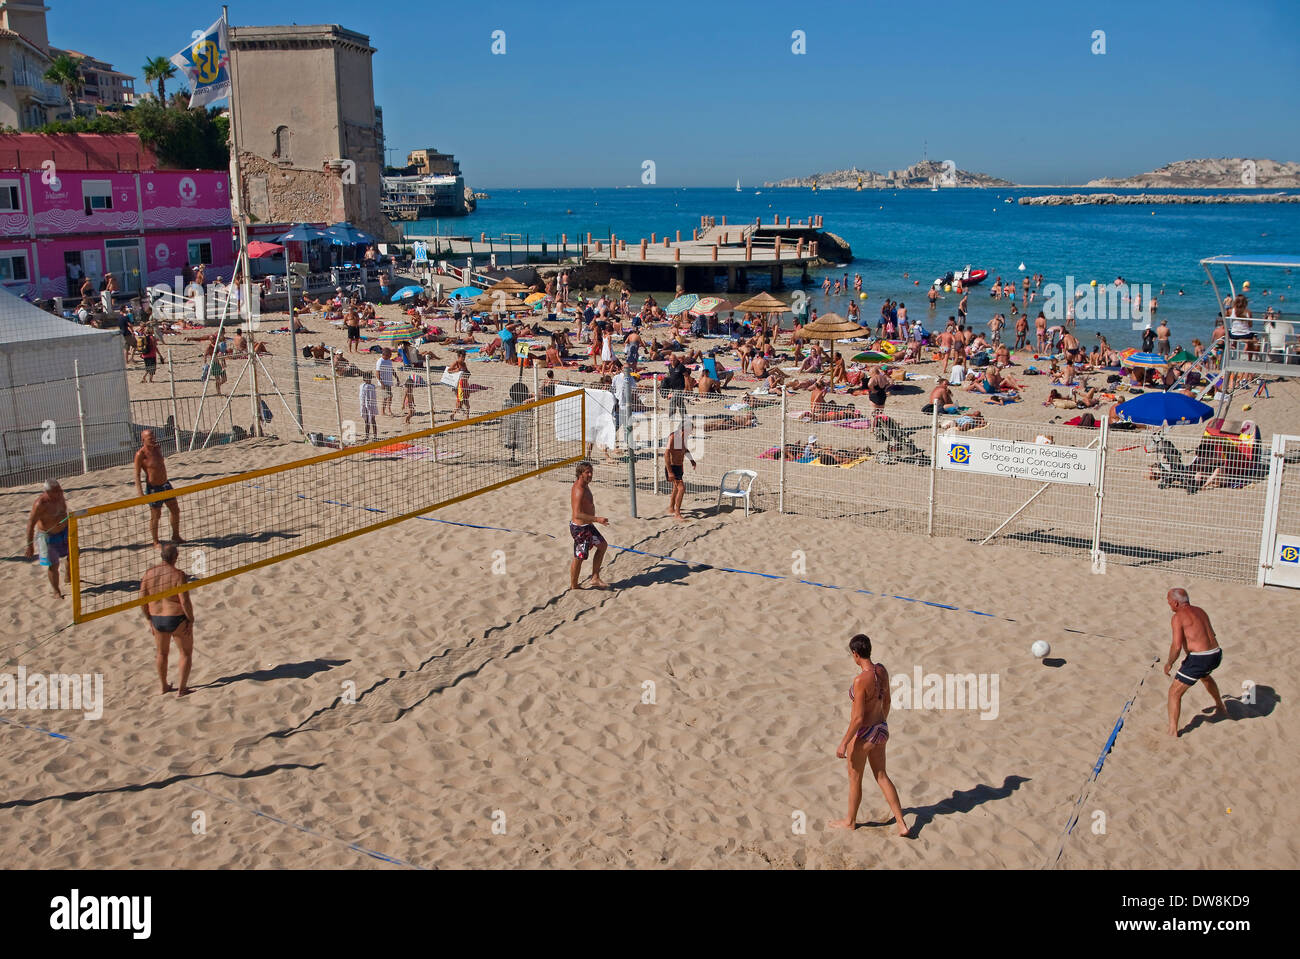 People Playing Beach Volleyball, Plage des Catalans, Marseille, France - Stock Image